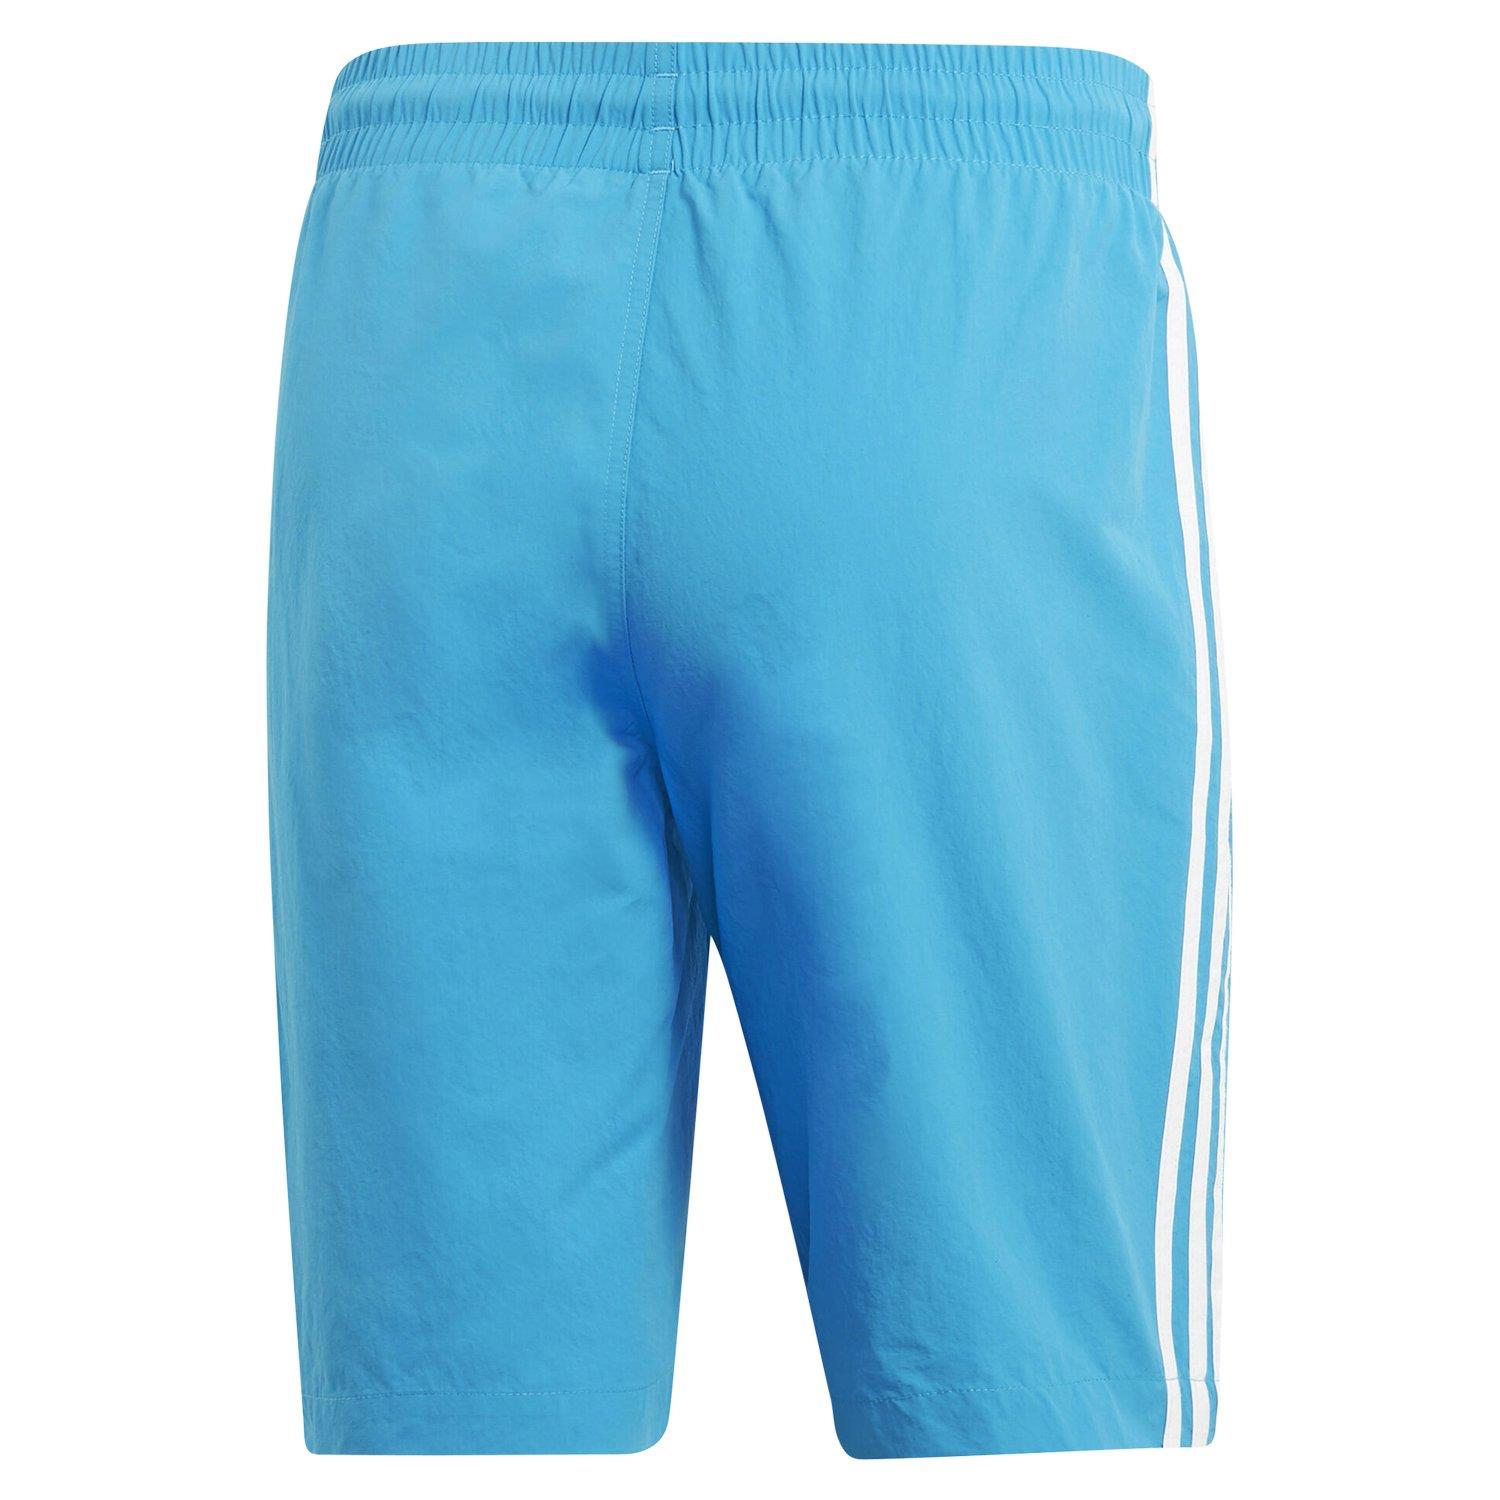 Football Punters are People Too Men Summer Casual Shorts,Beach Shorts Surf Shorts